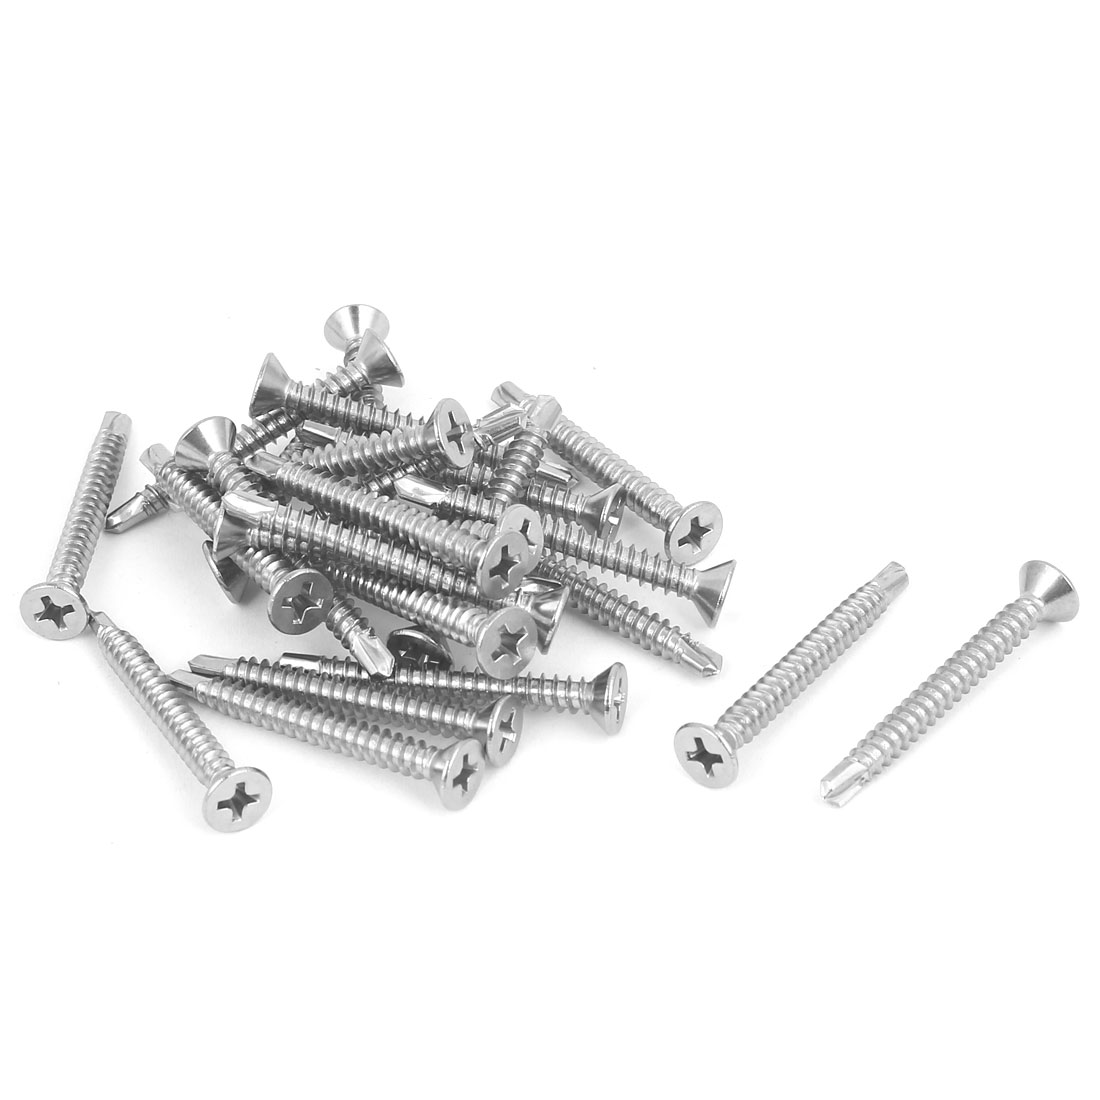 M4.2 x 38mm Male Thread Phillips Countersunk Head Self Drilling Screws 25 Pcs